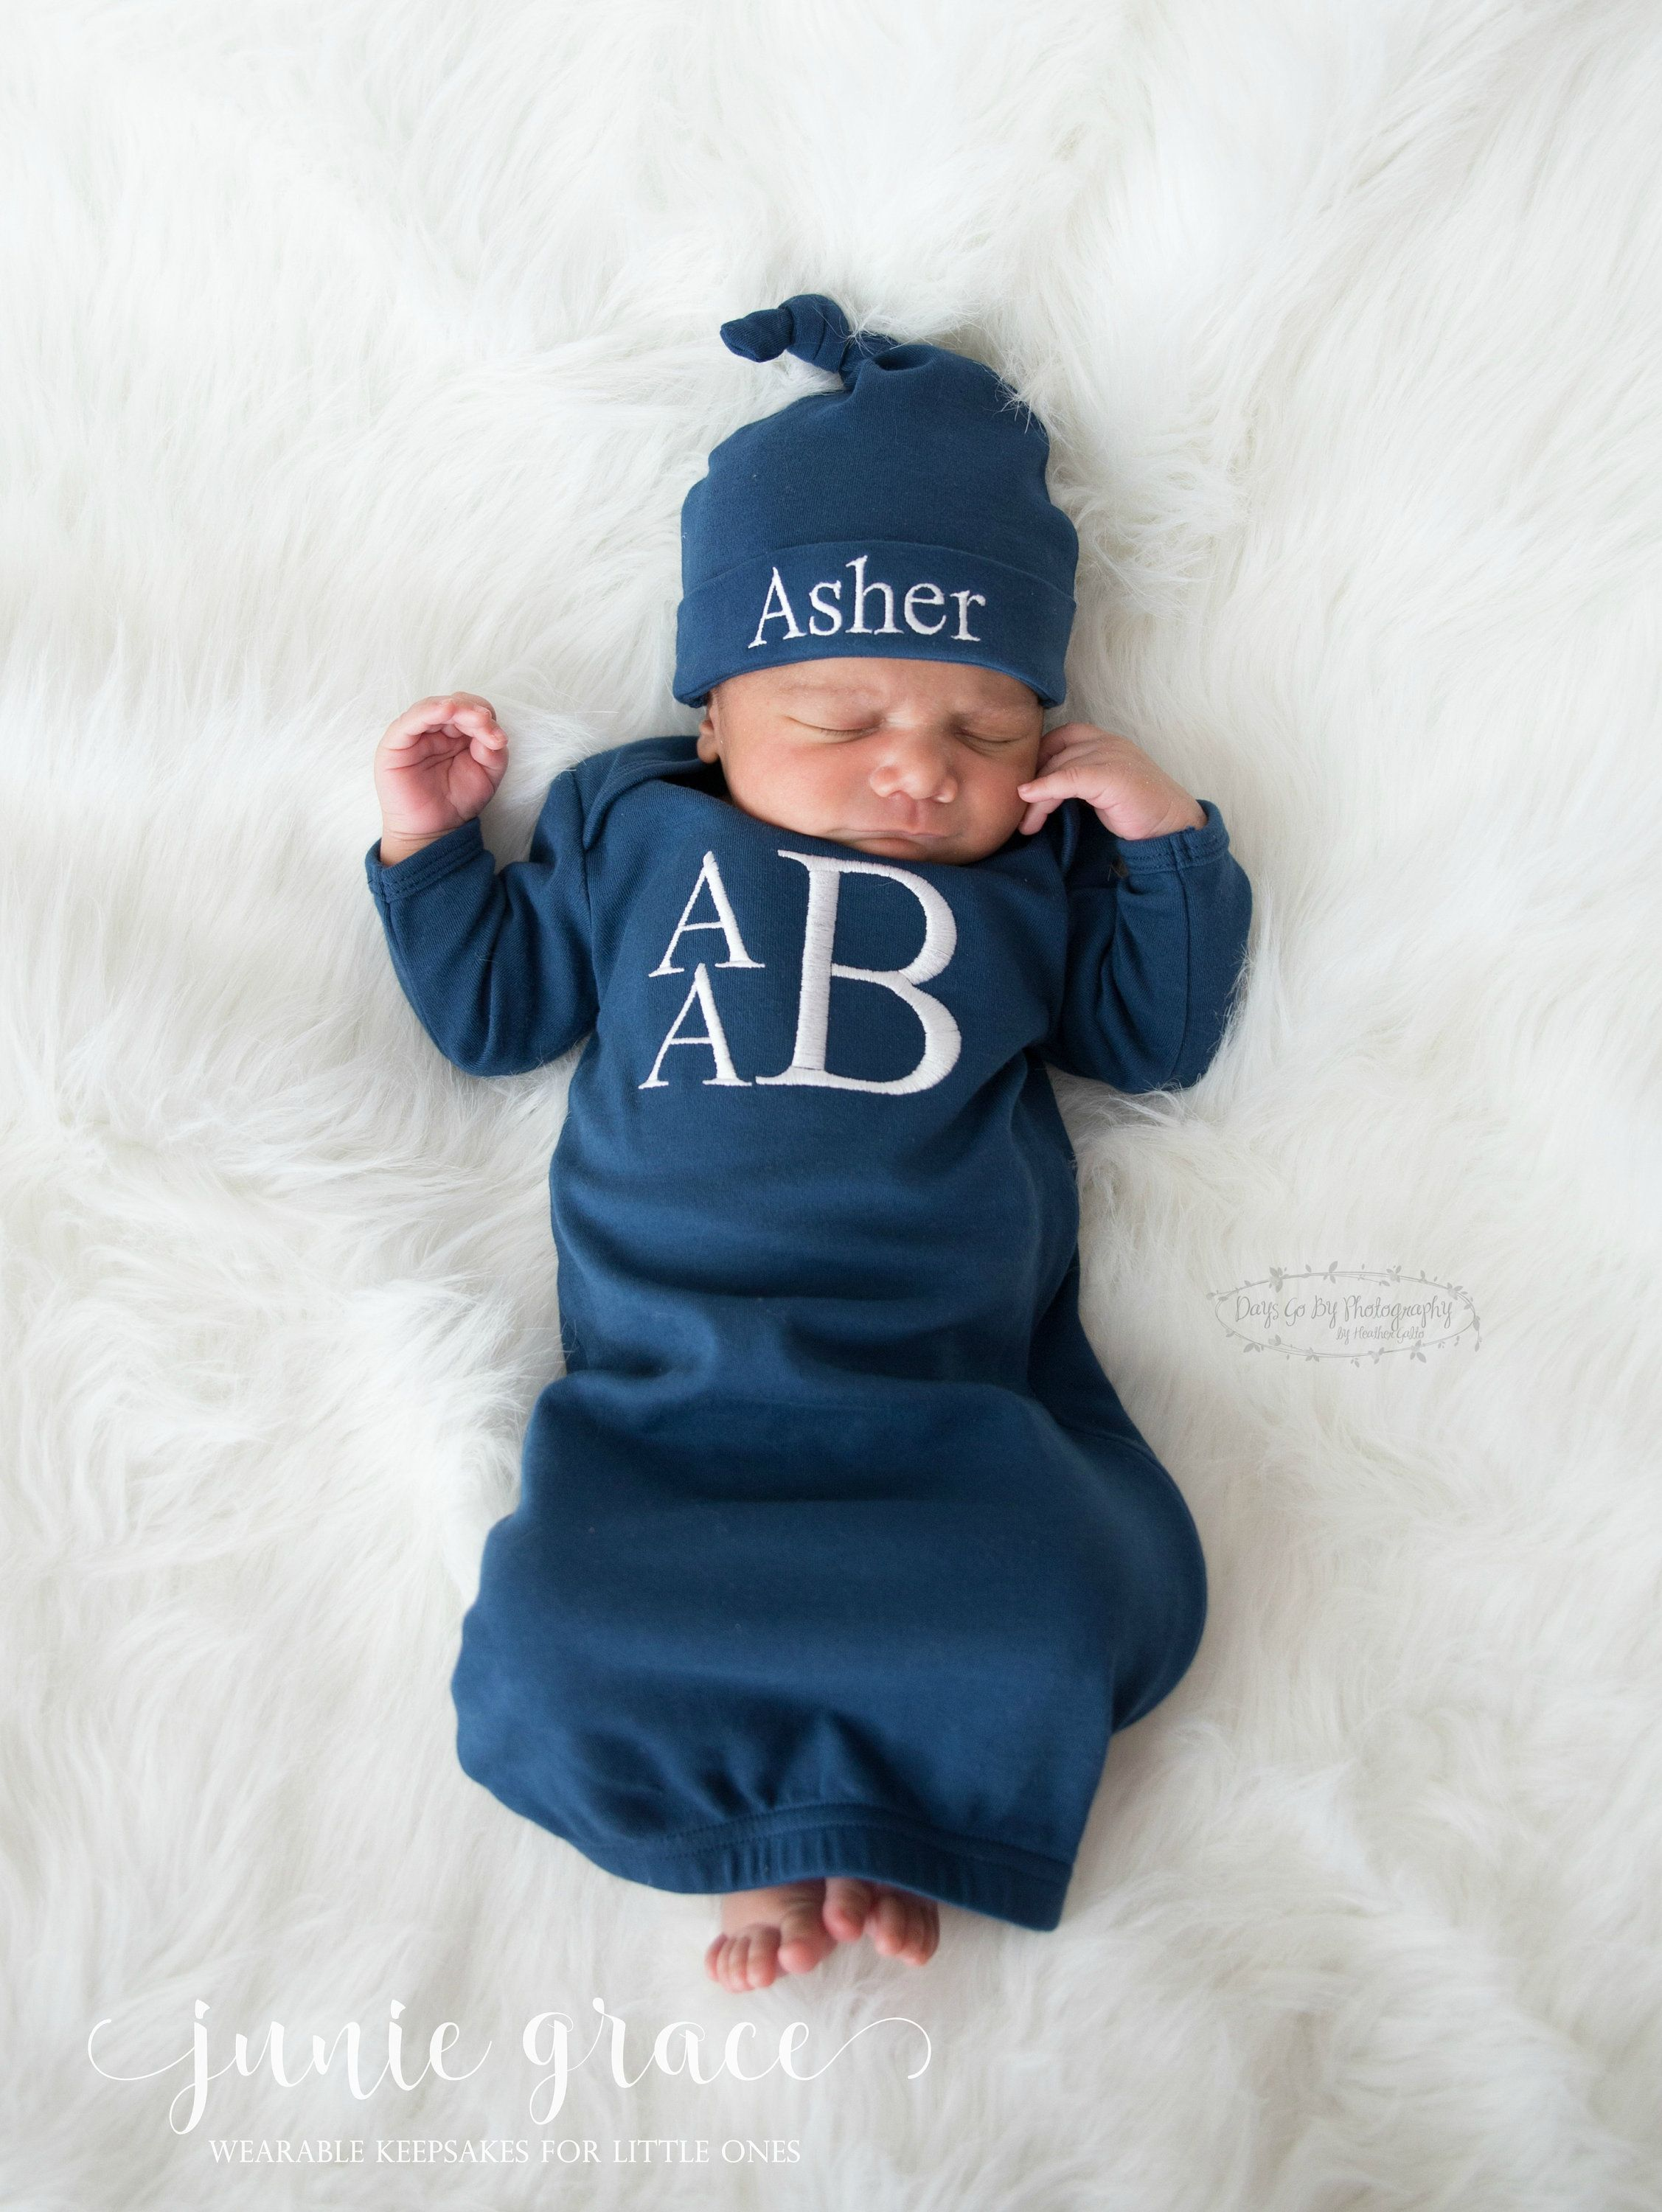 af8c3e2df Baby Boy Coming Home Outfit Baby Boy Clothes Baby Boy Gift Newborn ...